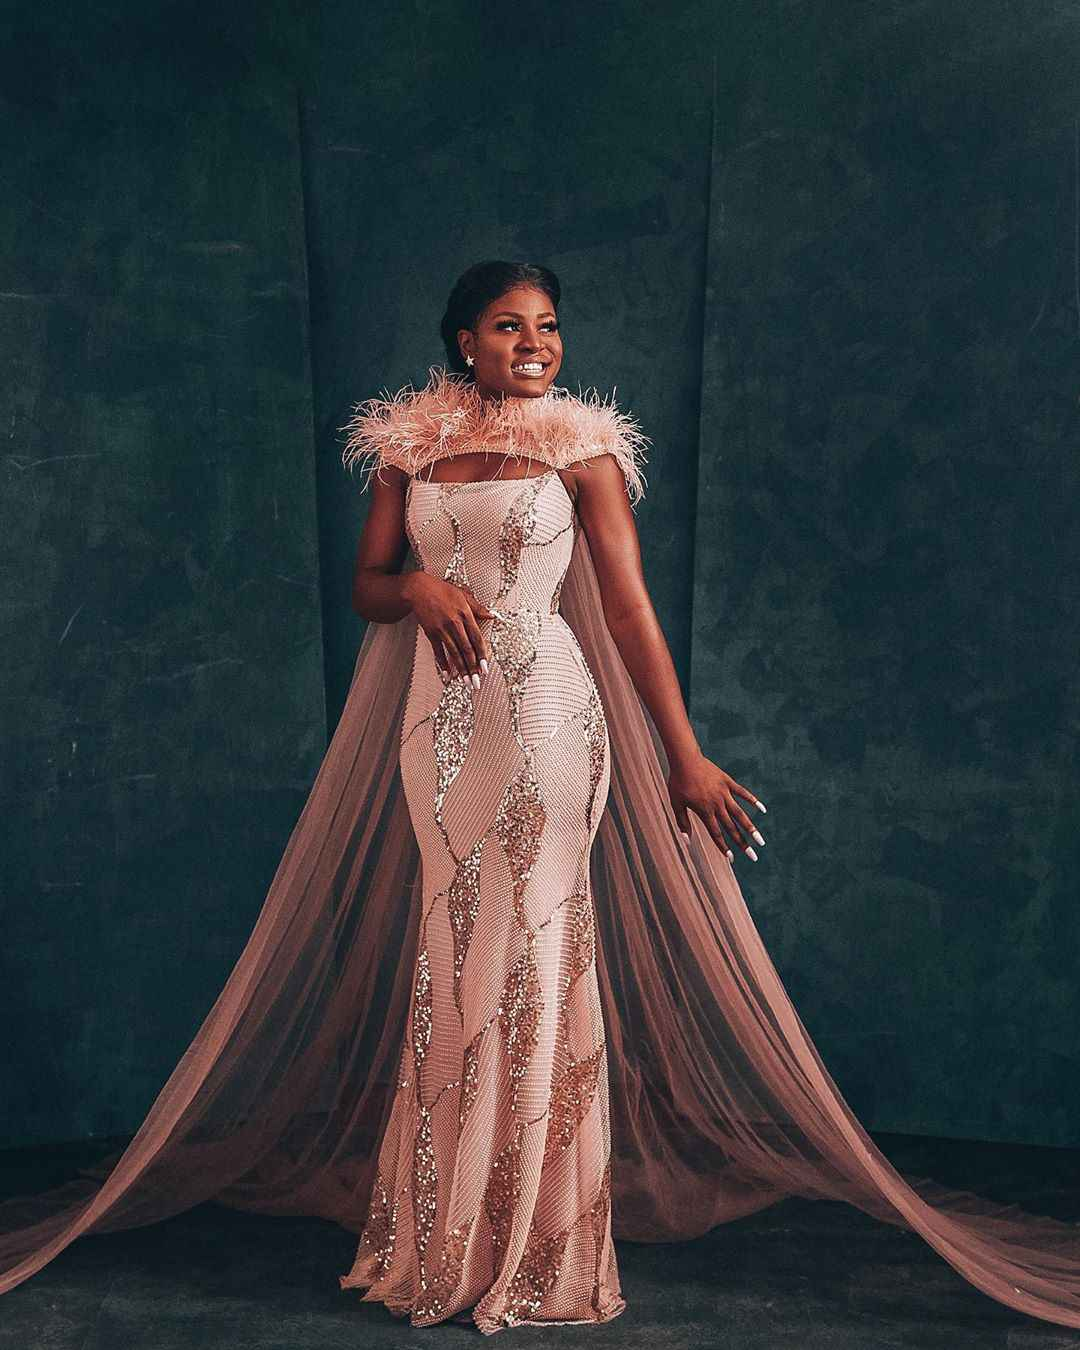 VIDEO: Alex  fans surprises her with 1 million naira to celebrate her 24th birthday